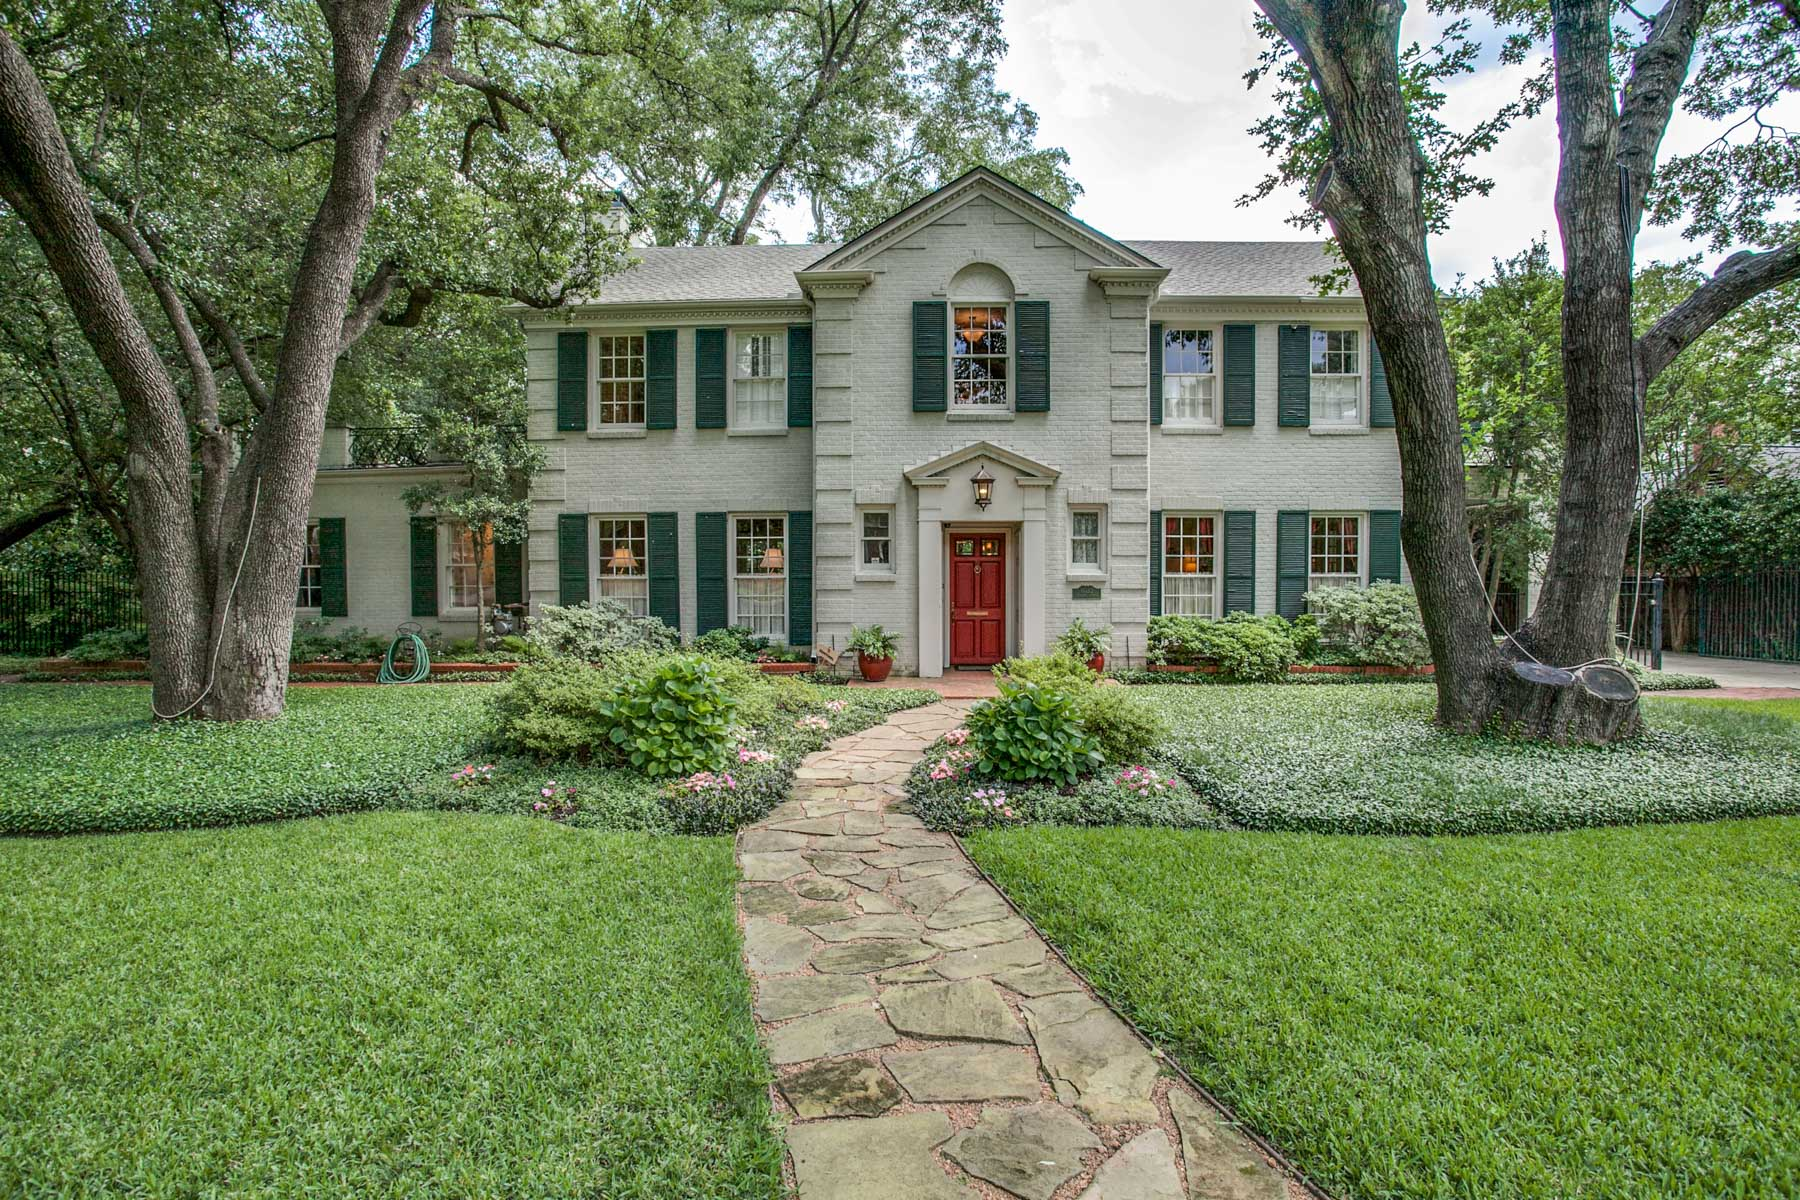 Vivienda unifamiliar por un Venta en Classic Preston Hollow 6032 Deloache Ave Dallas, Texas, 75225 Estados Unidos